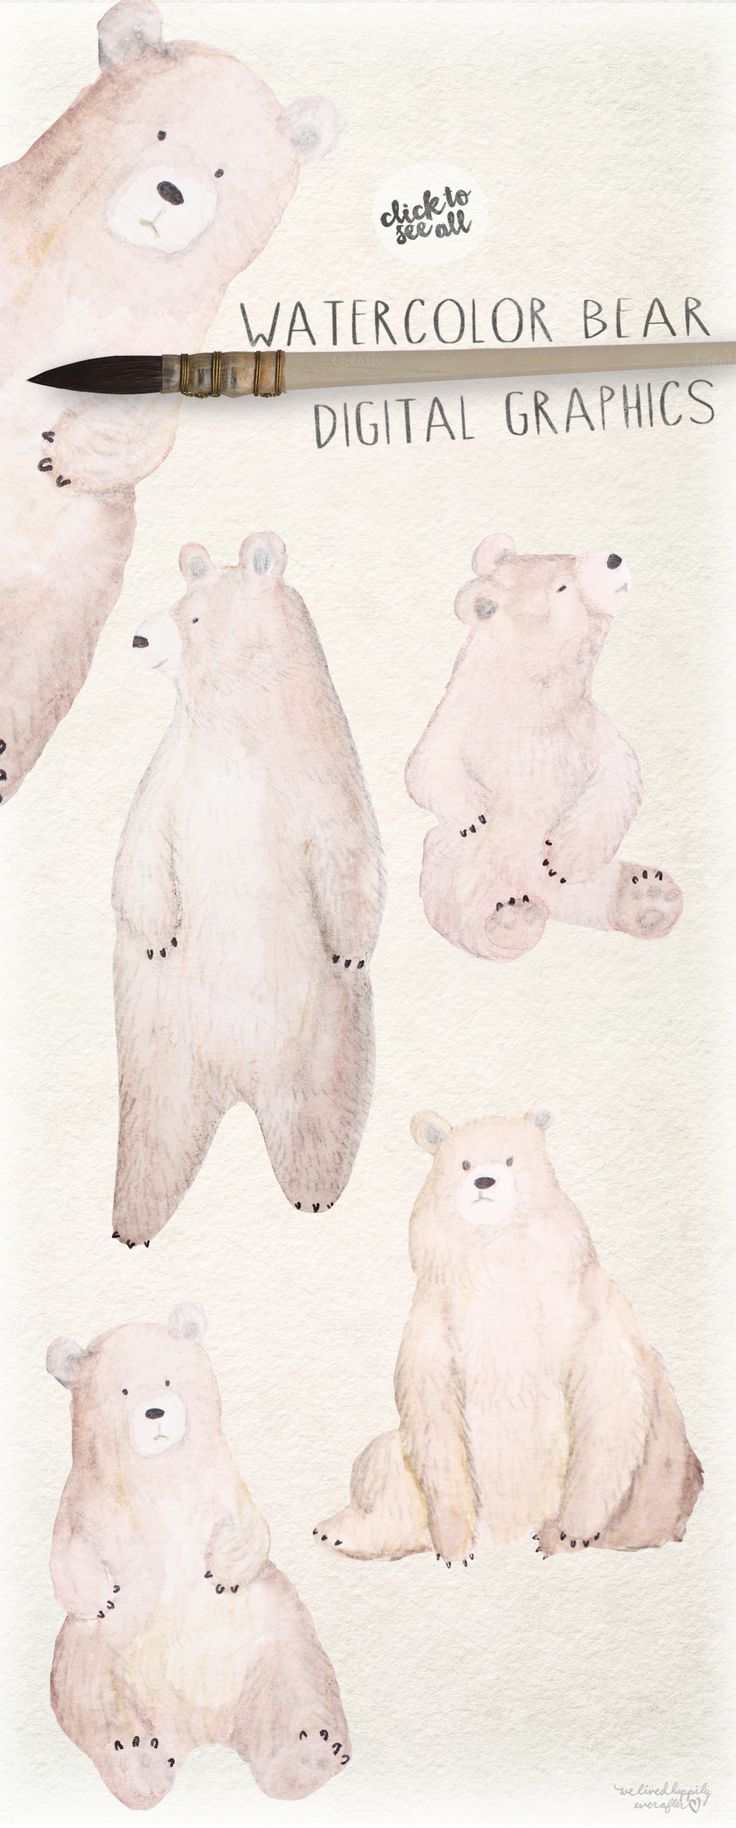 Watercolor Bear Digital Graphics - Illustrations - 3